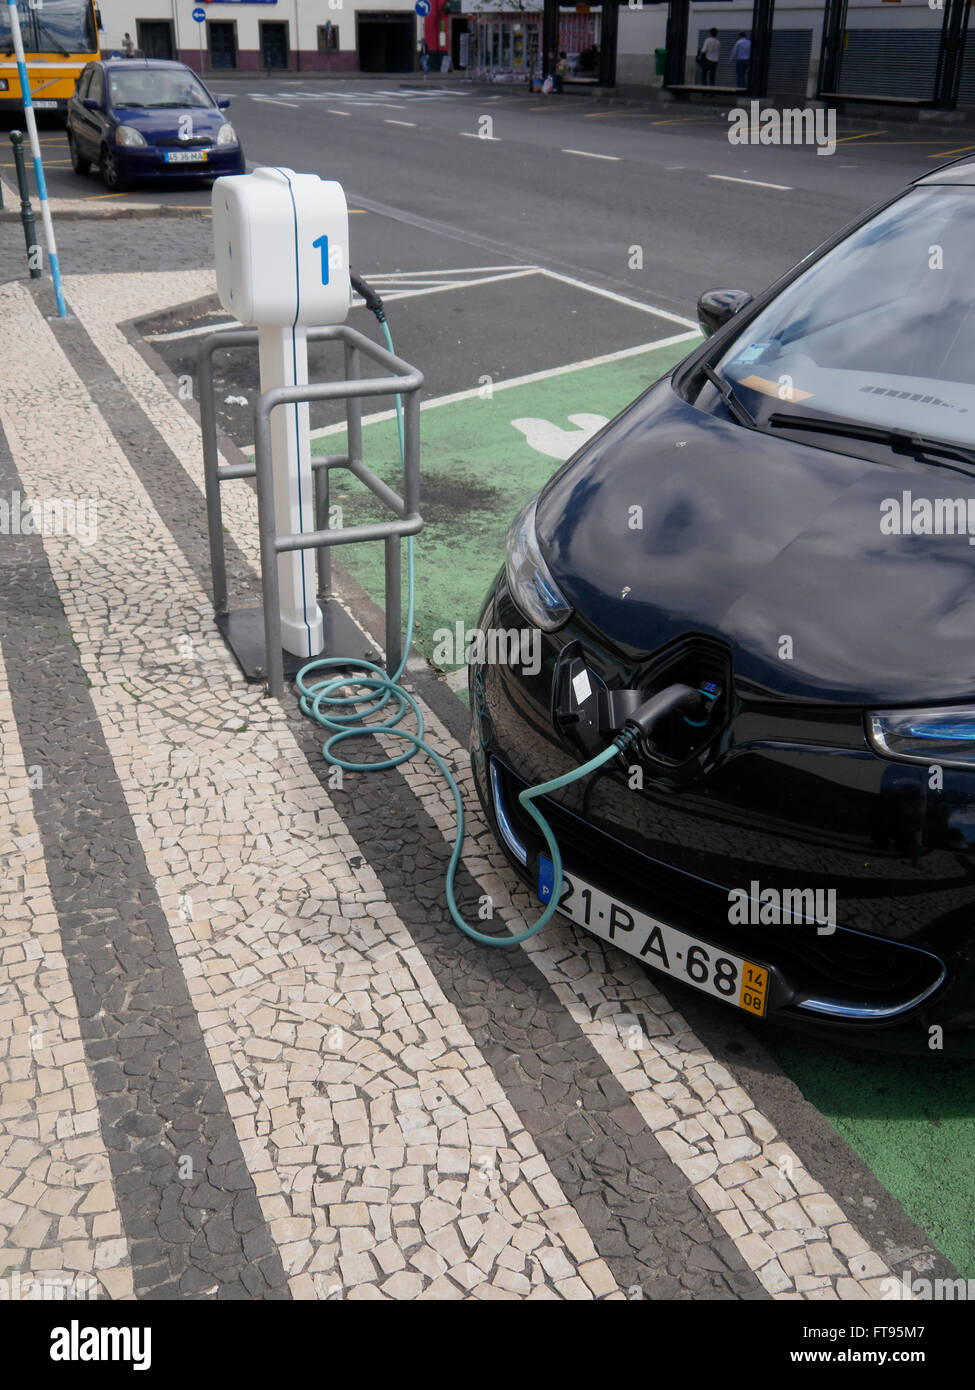 Electric car being charged at public charging point, Madeira, Portugal, March 2016 - Stock Image